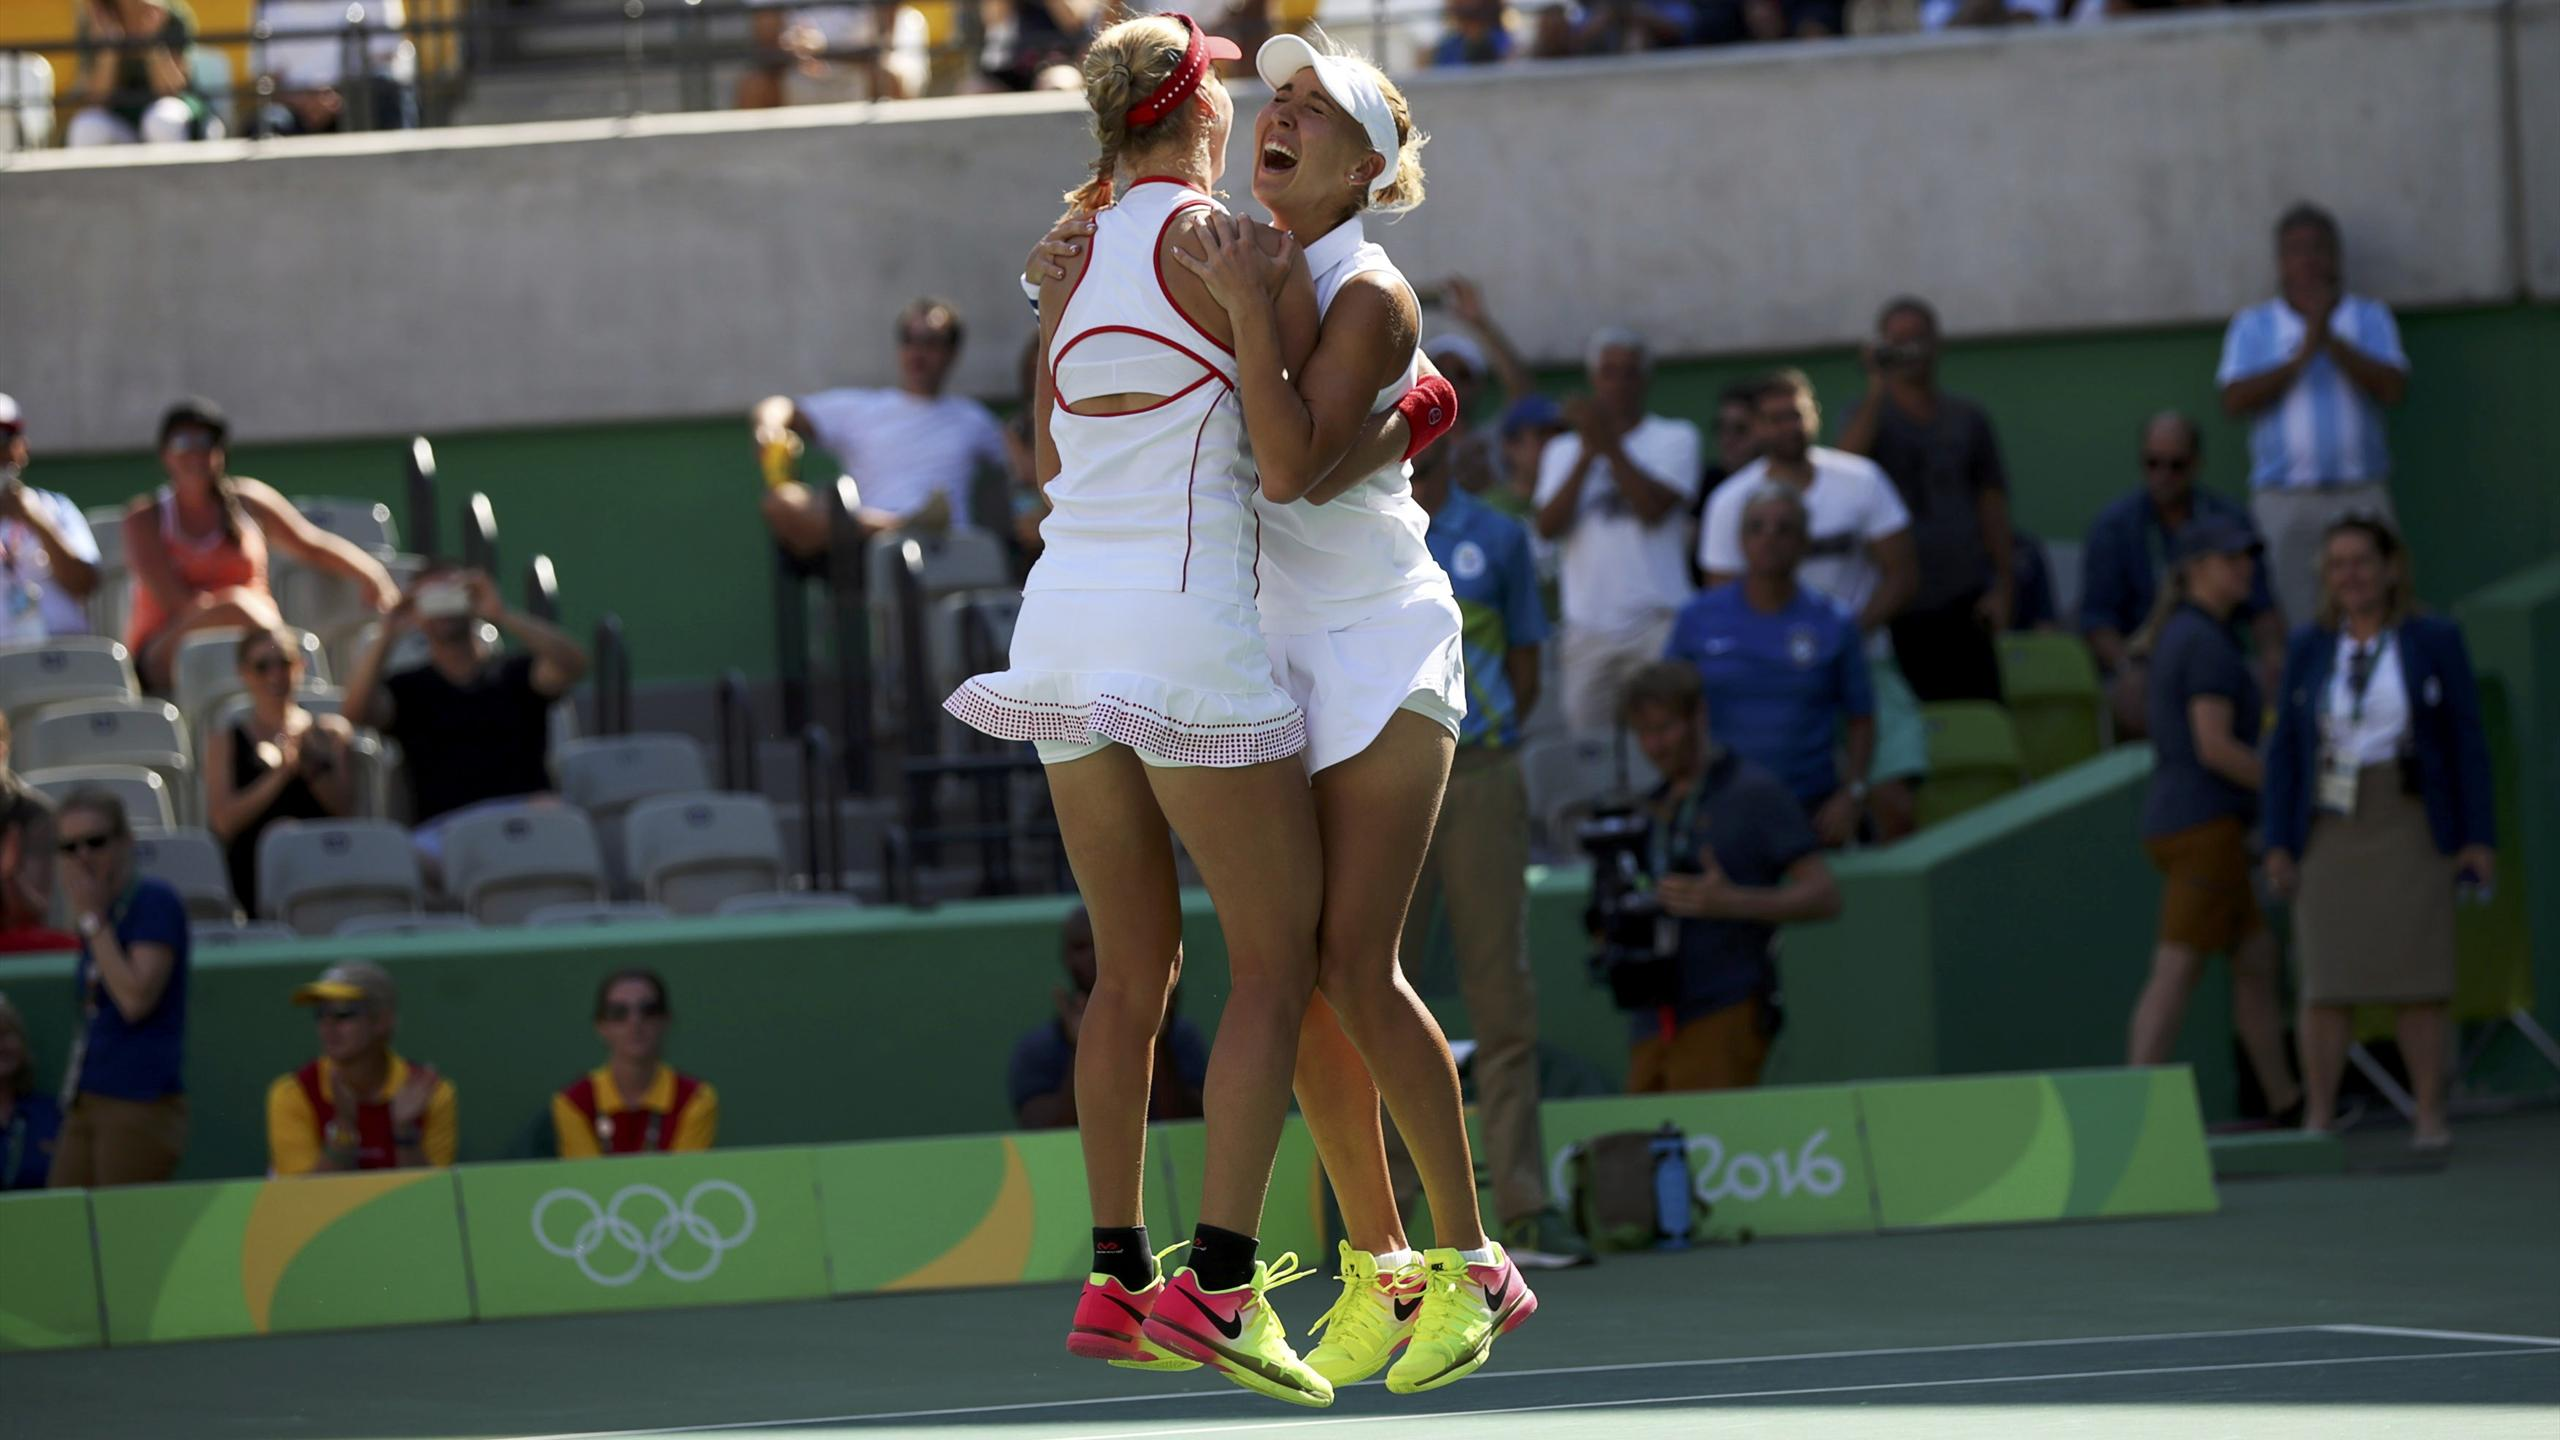 Elena Vesnina (RUS) of Russia and Ekaterina Makarova (RUS) of Russia celebrate after winning their match against Martina Hingis (SUI) of Switzerland and Timea Bacsinszky (SUI) of Switzerland